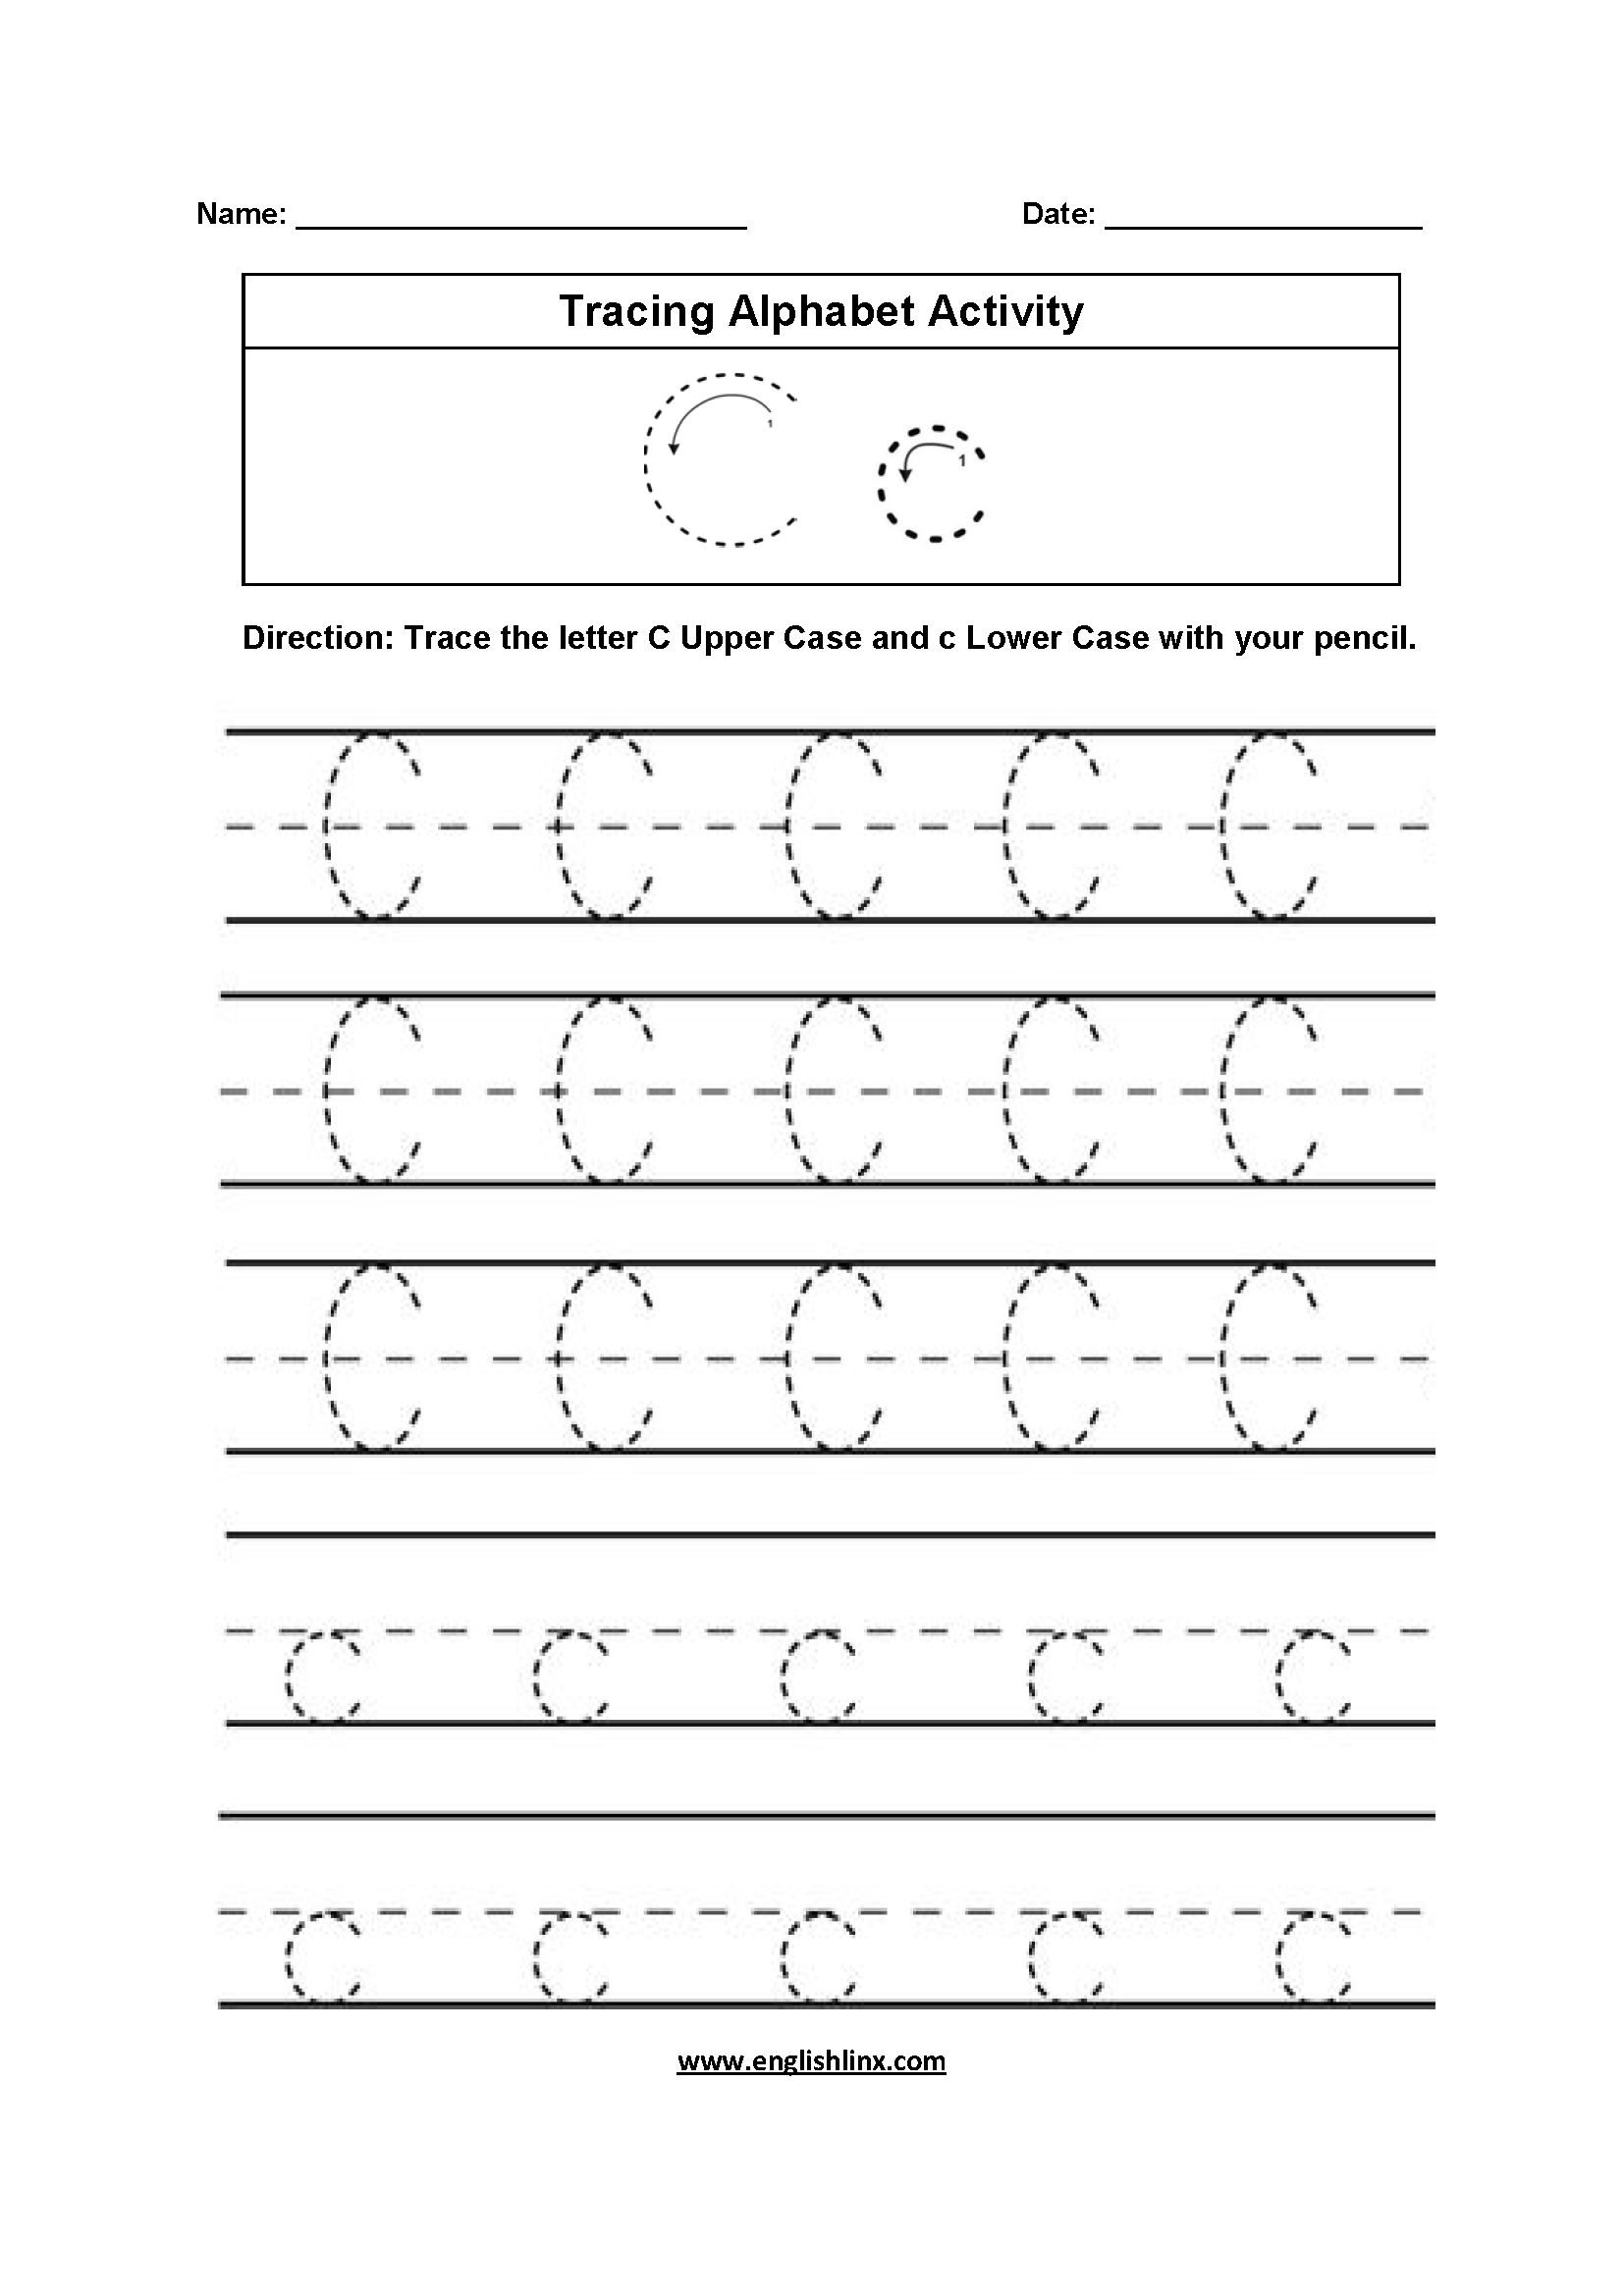 Alphabet Worksheets | Tracing Alphabet Worksheets